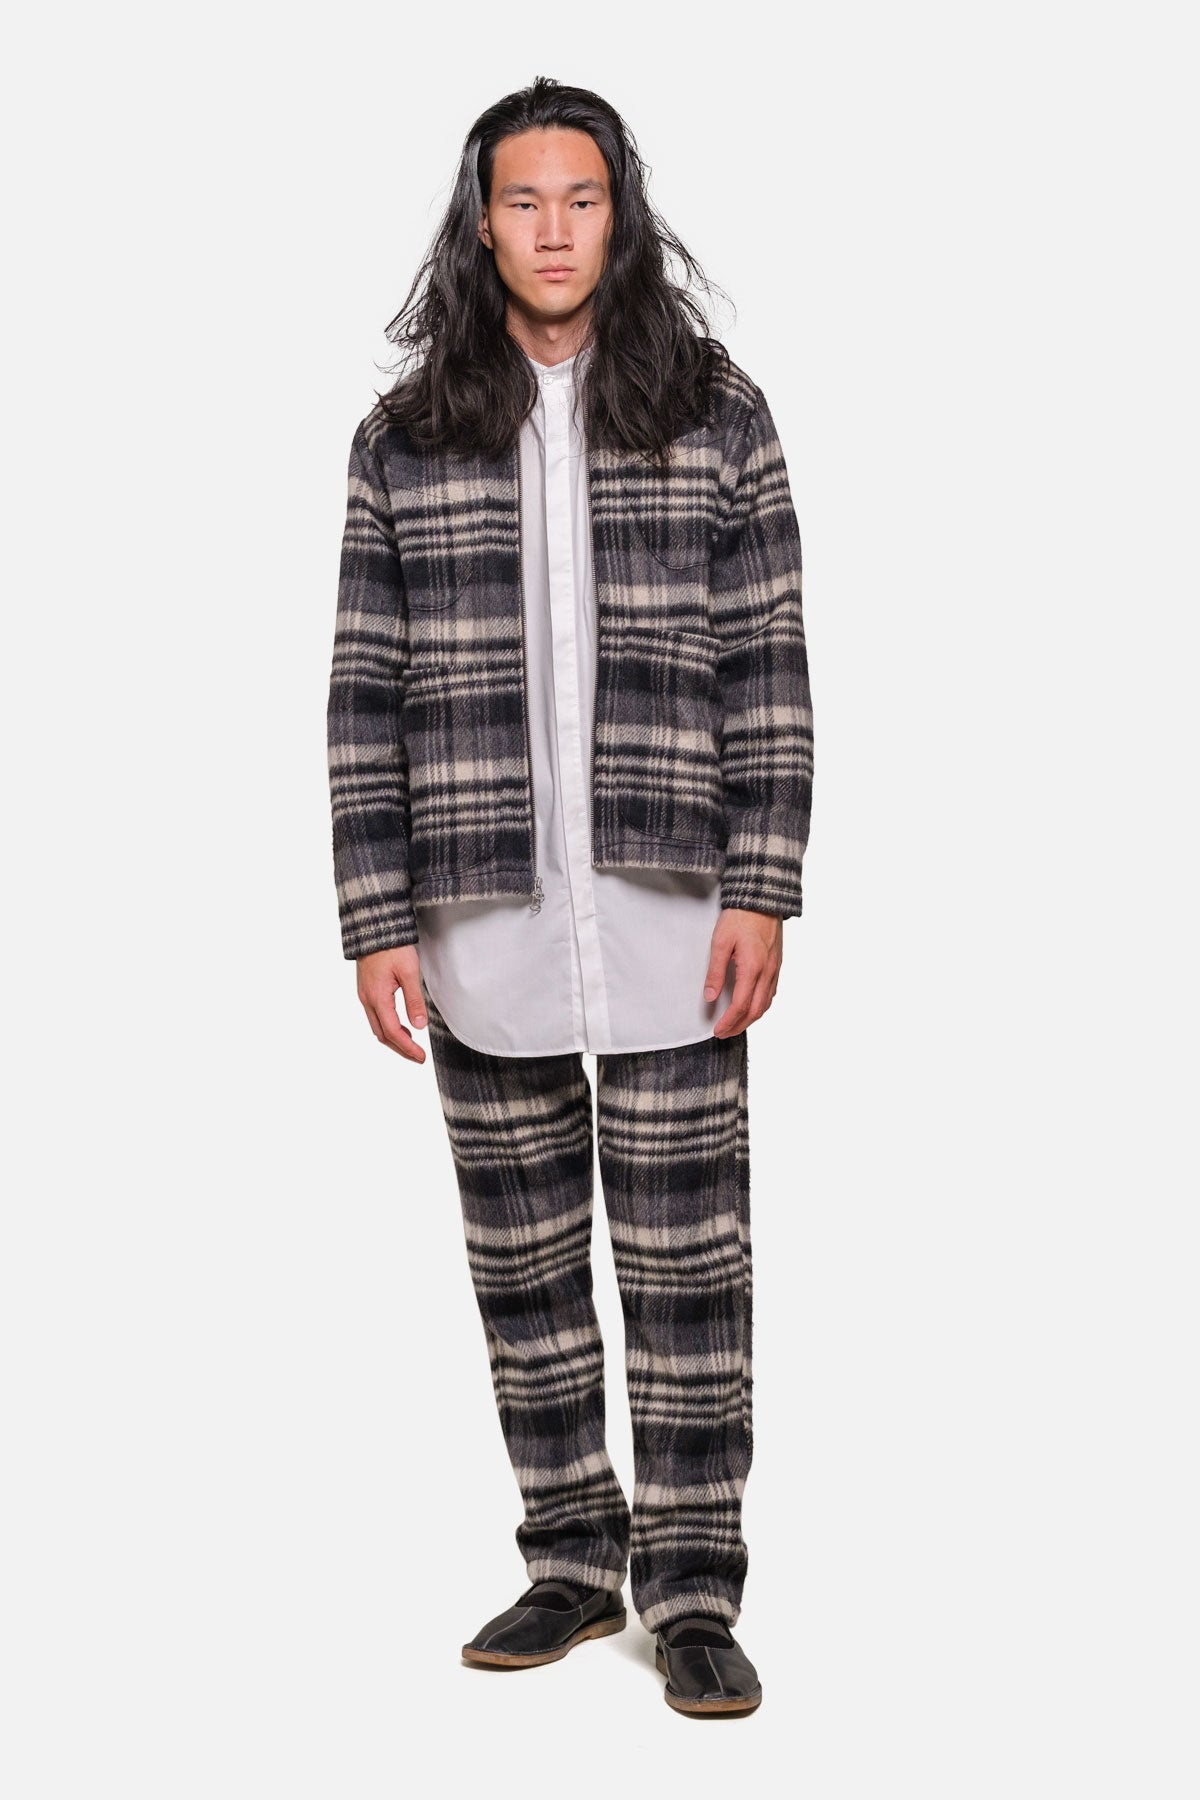 LINCOLN JACKET IN GREY/BLACK WOOL PILE PLAID - Fortune Goods